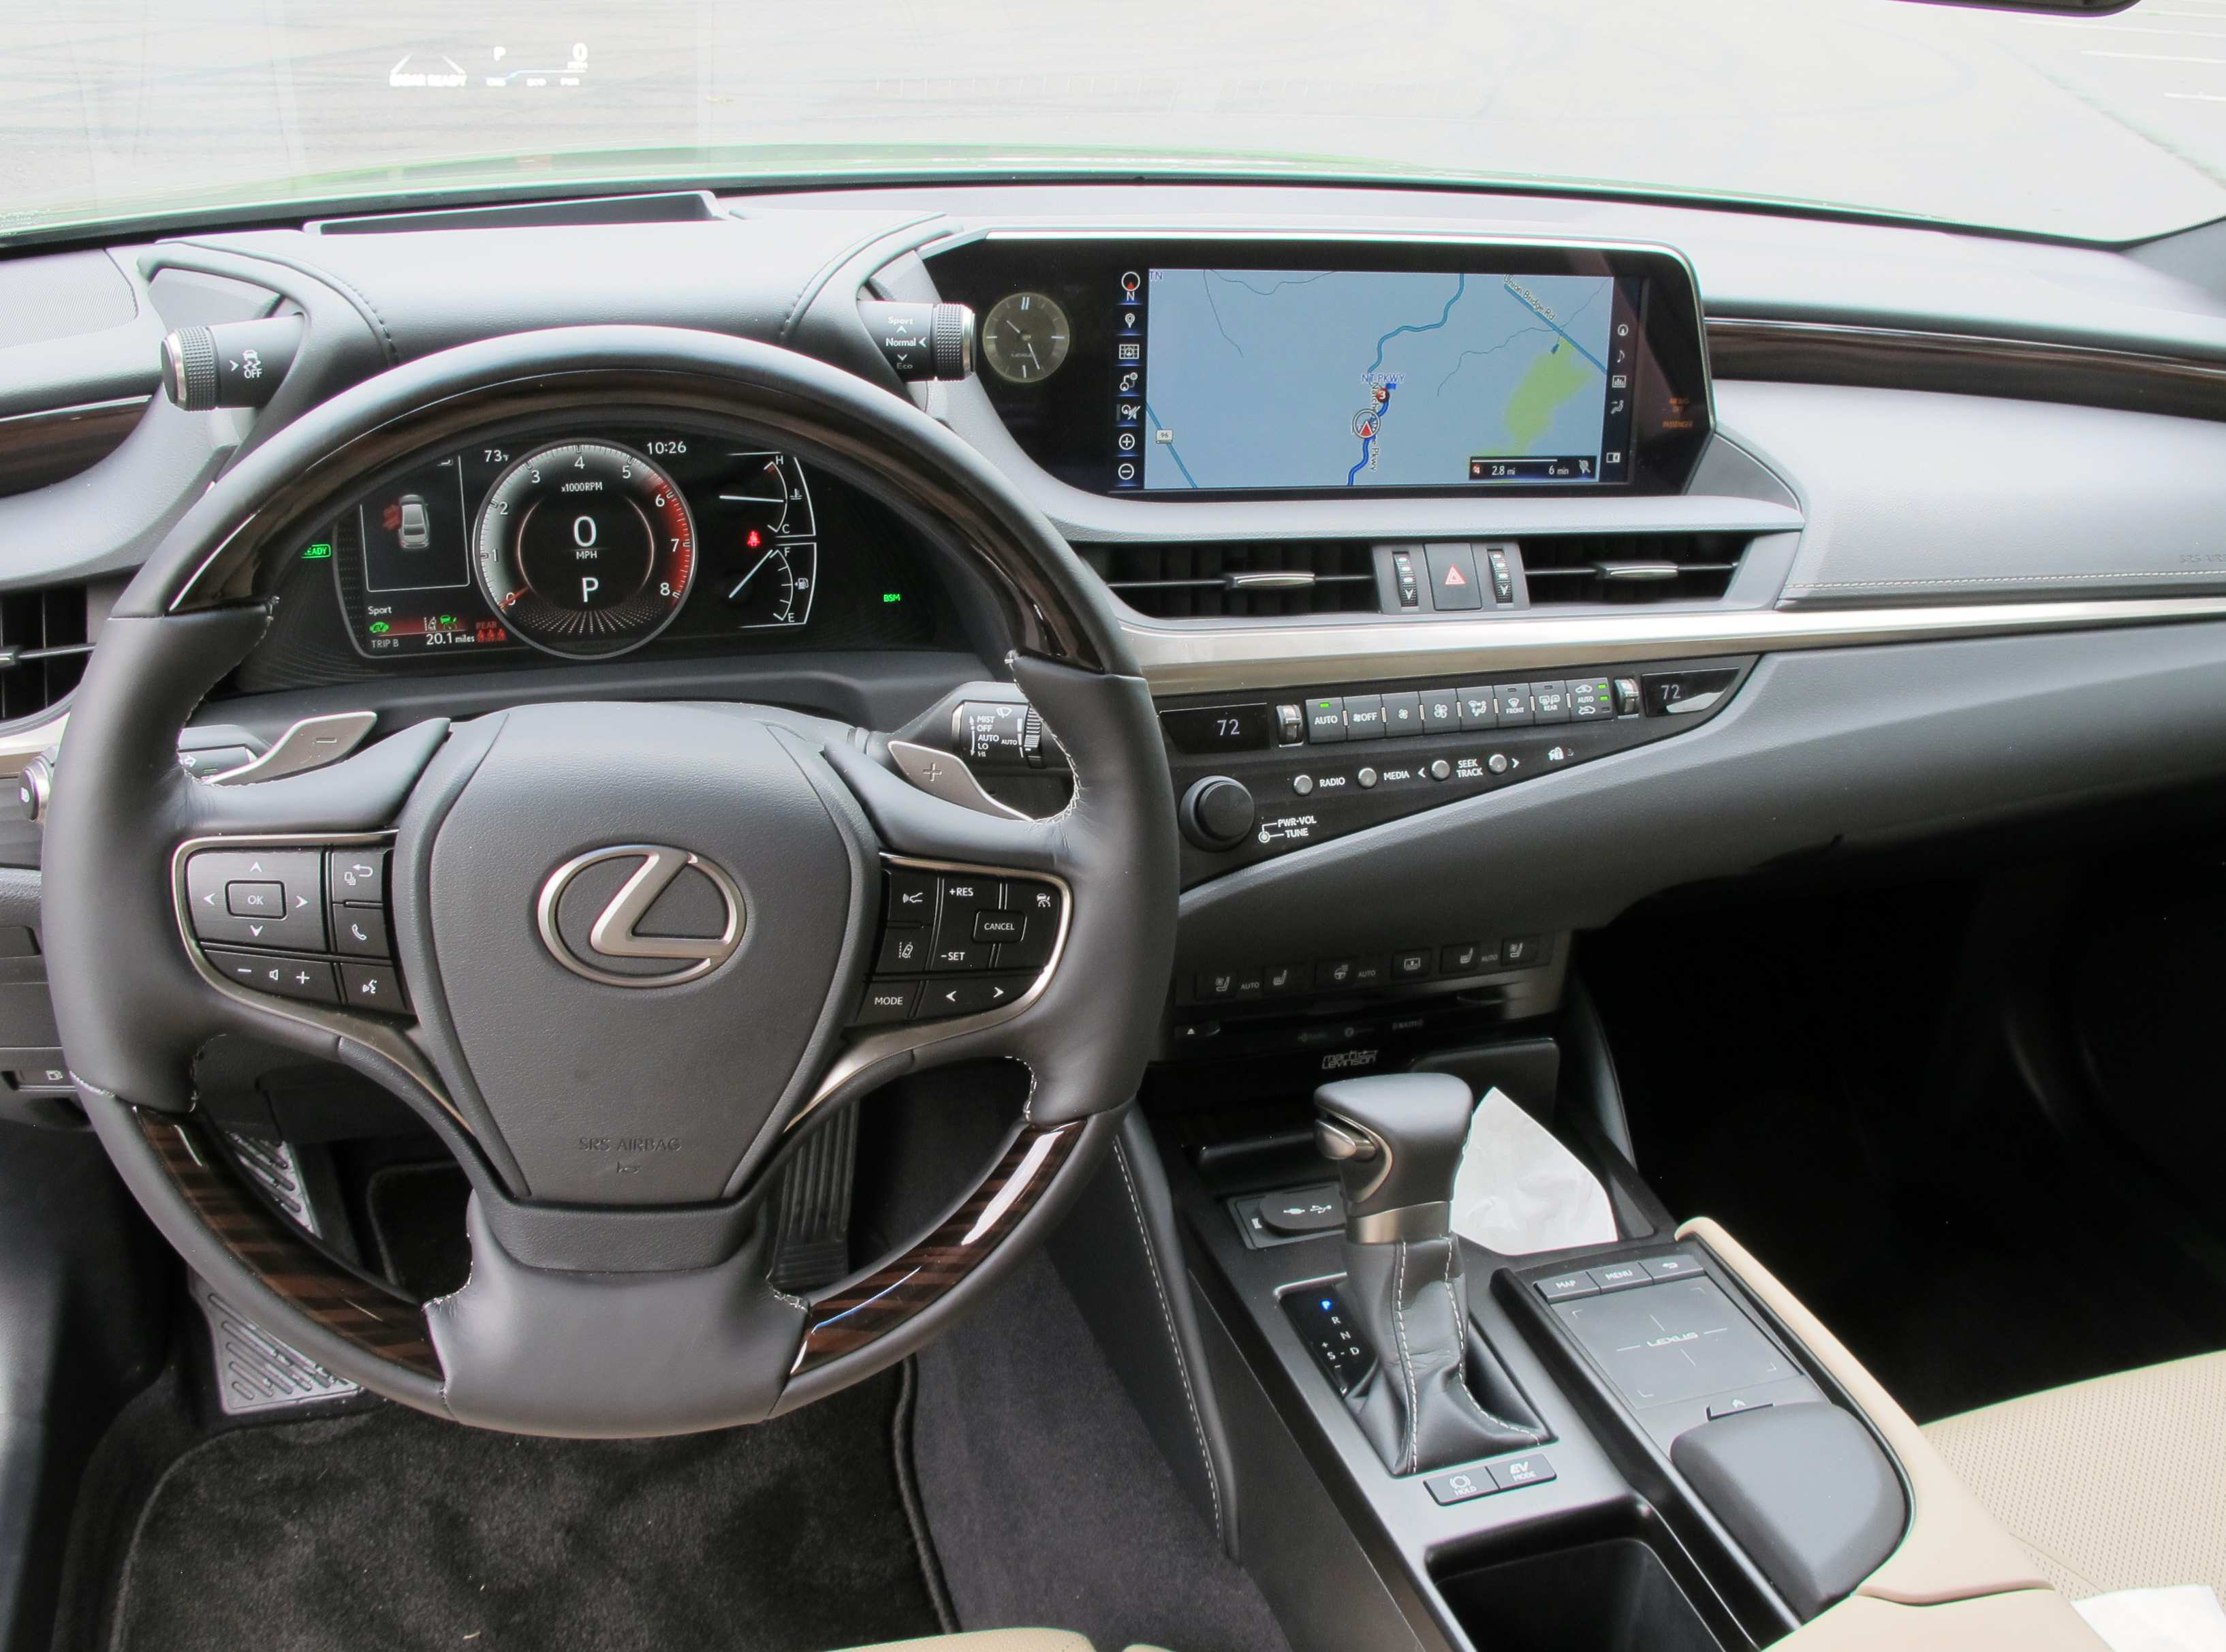 82 Gallery of 2019 Lexus Es Interior New Concept with 2019 Lexus Es Interior